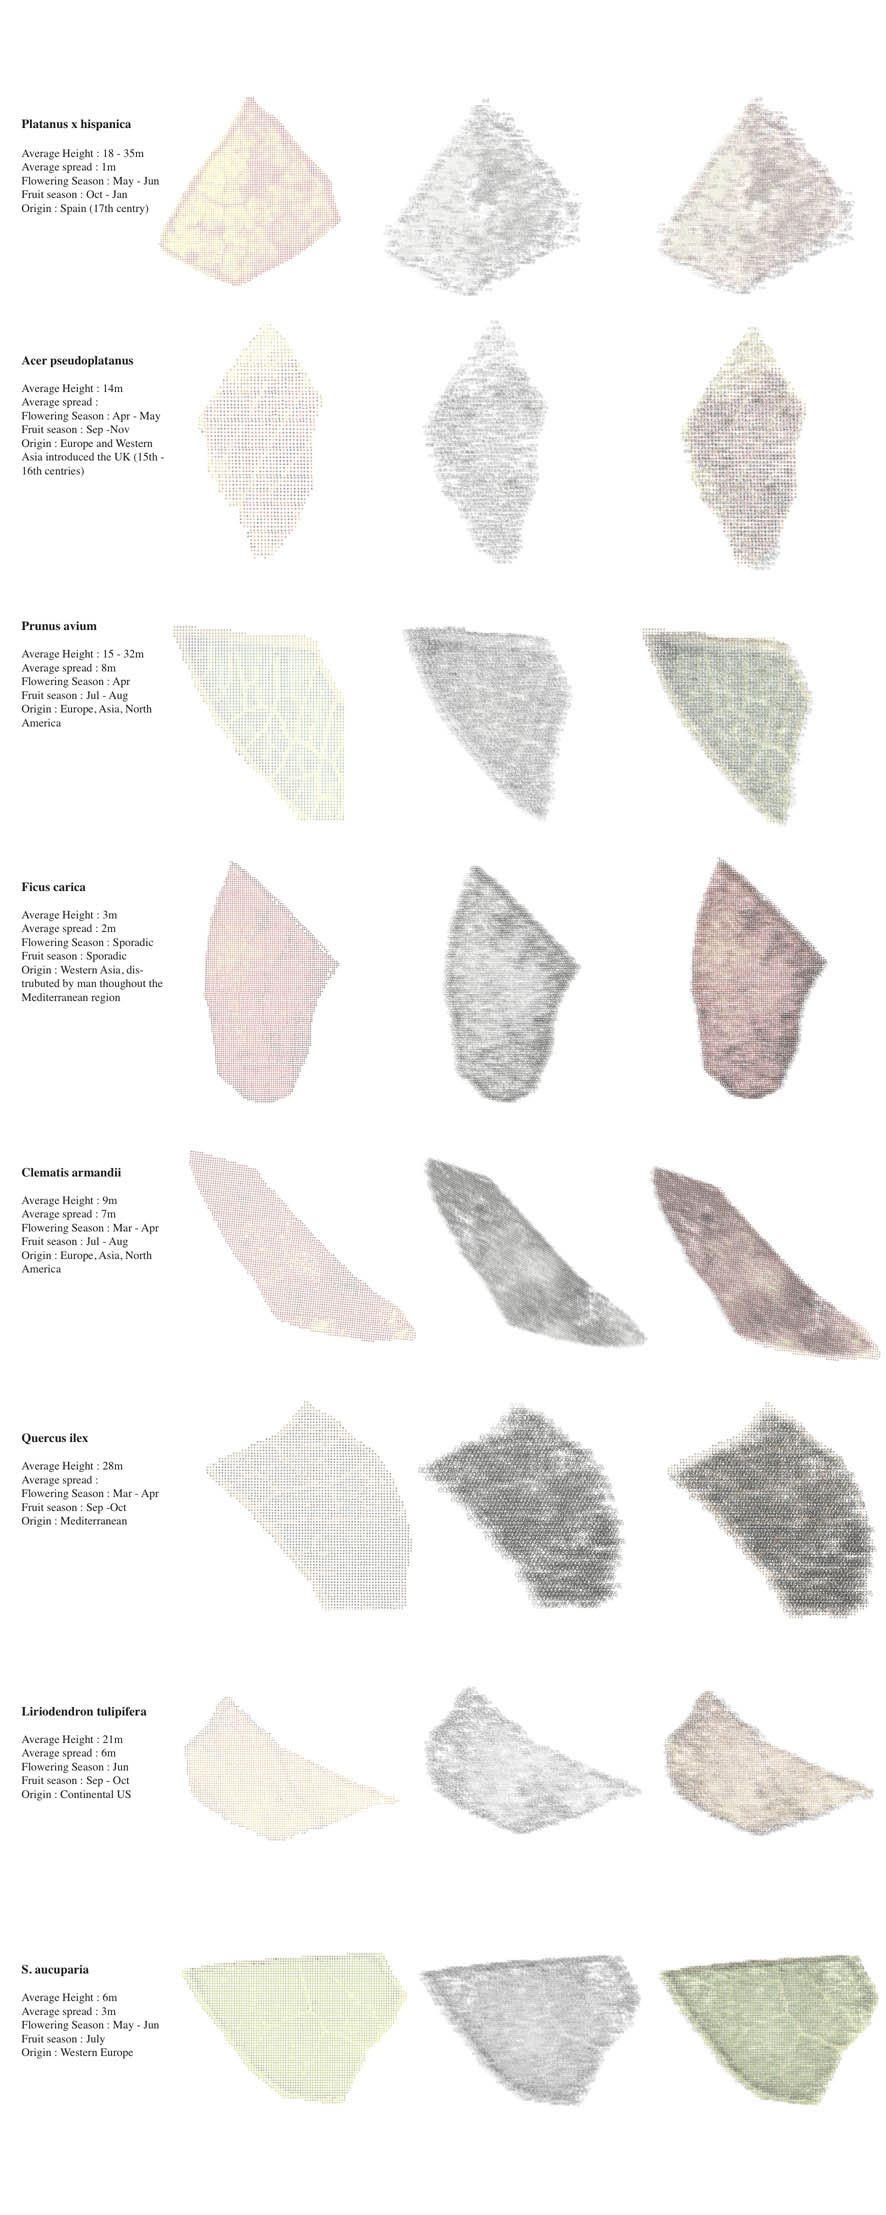 Aa school of architecture projects review 2011 inter 9 for Inter meuble tunisie catalogue 2011